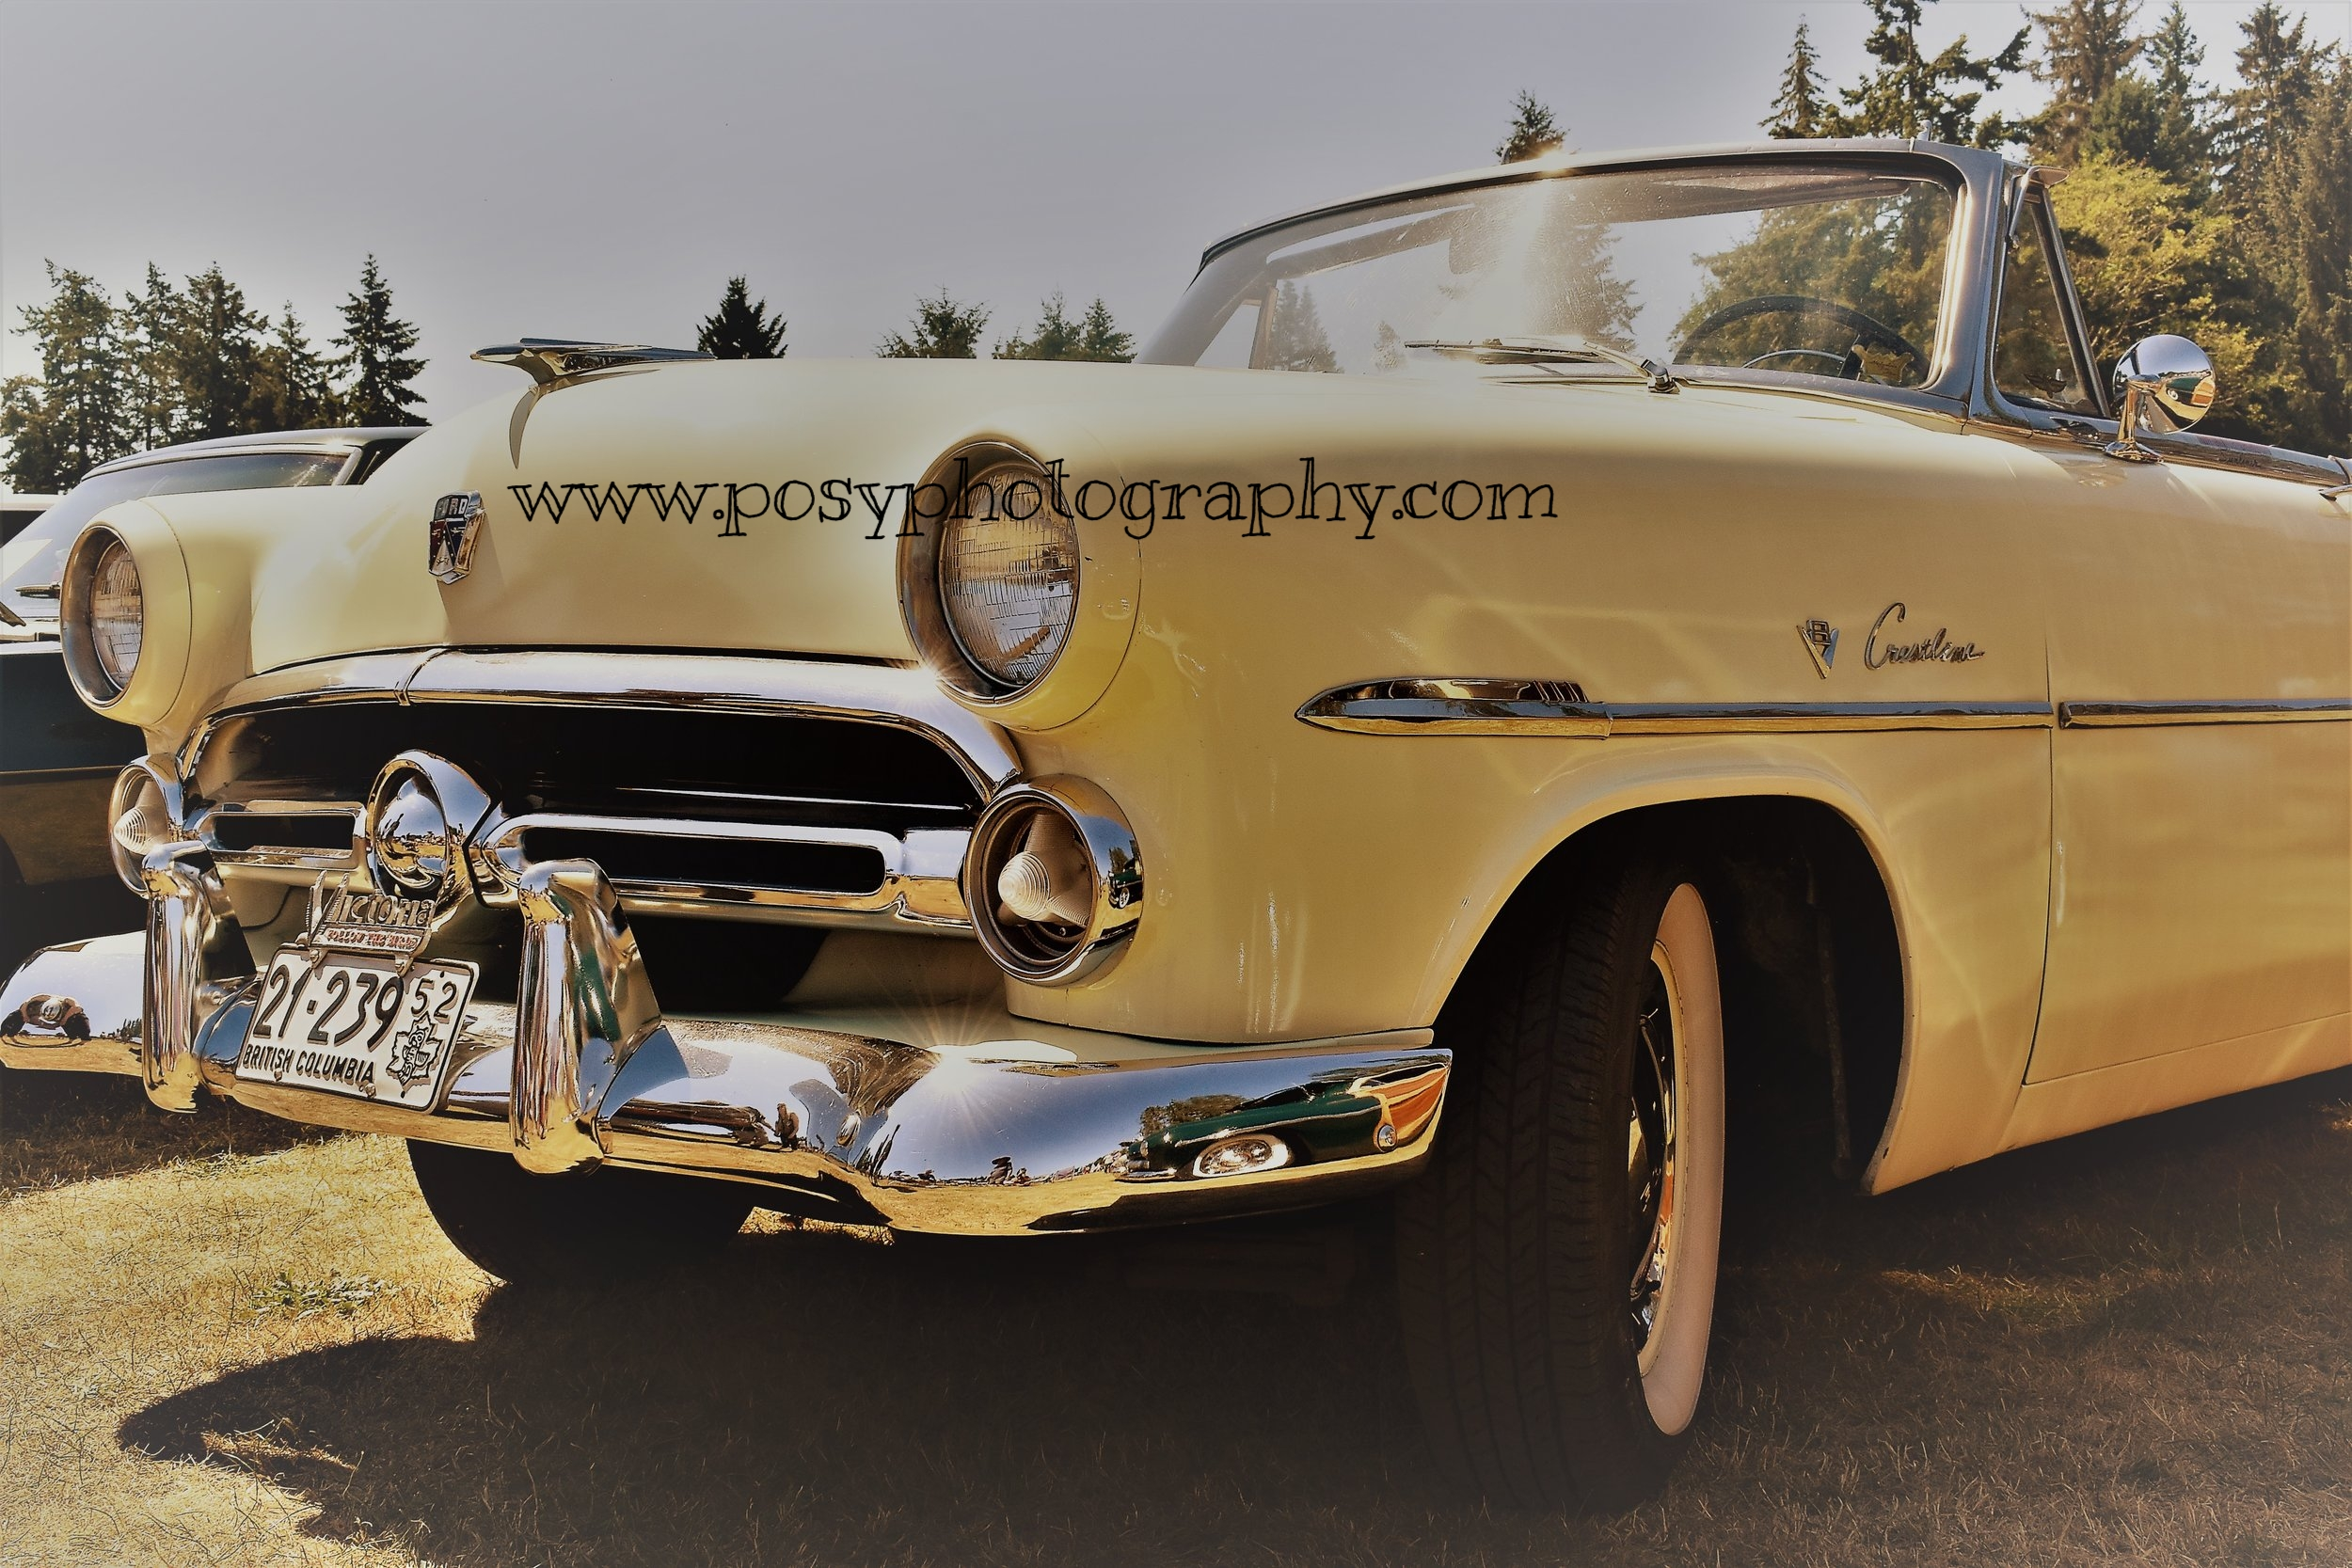 Ford - Sooke Car Show - Car photography